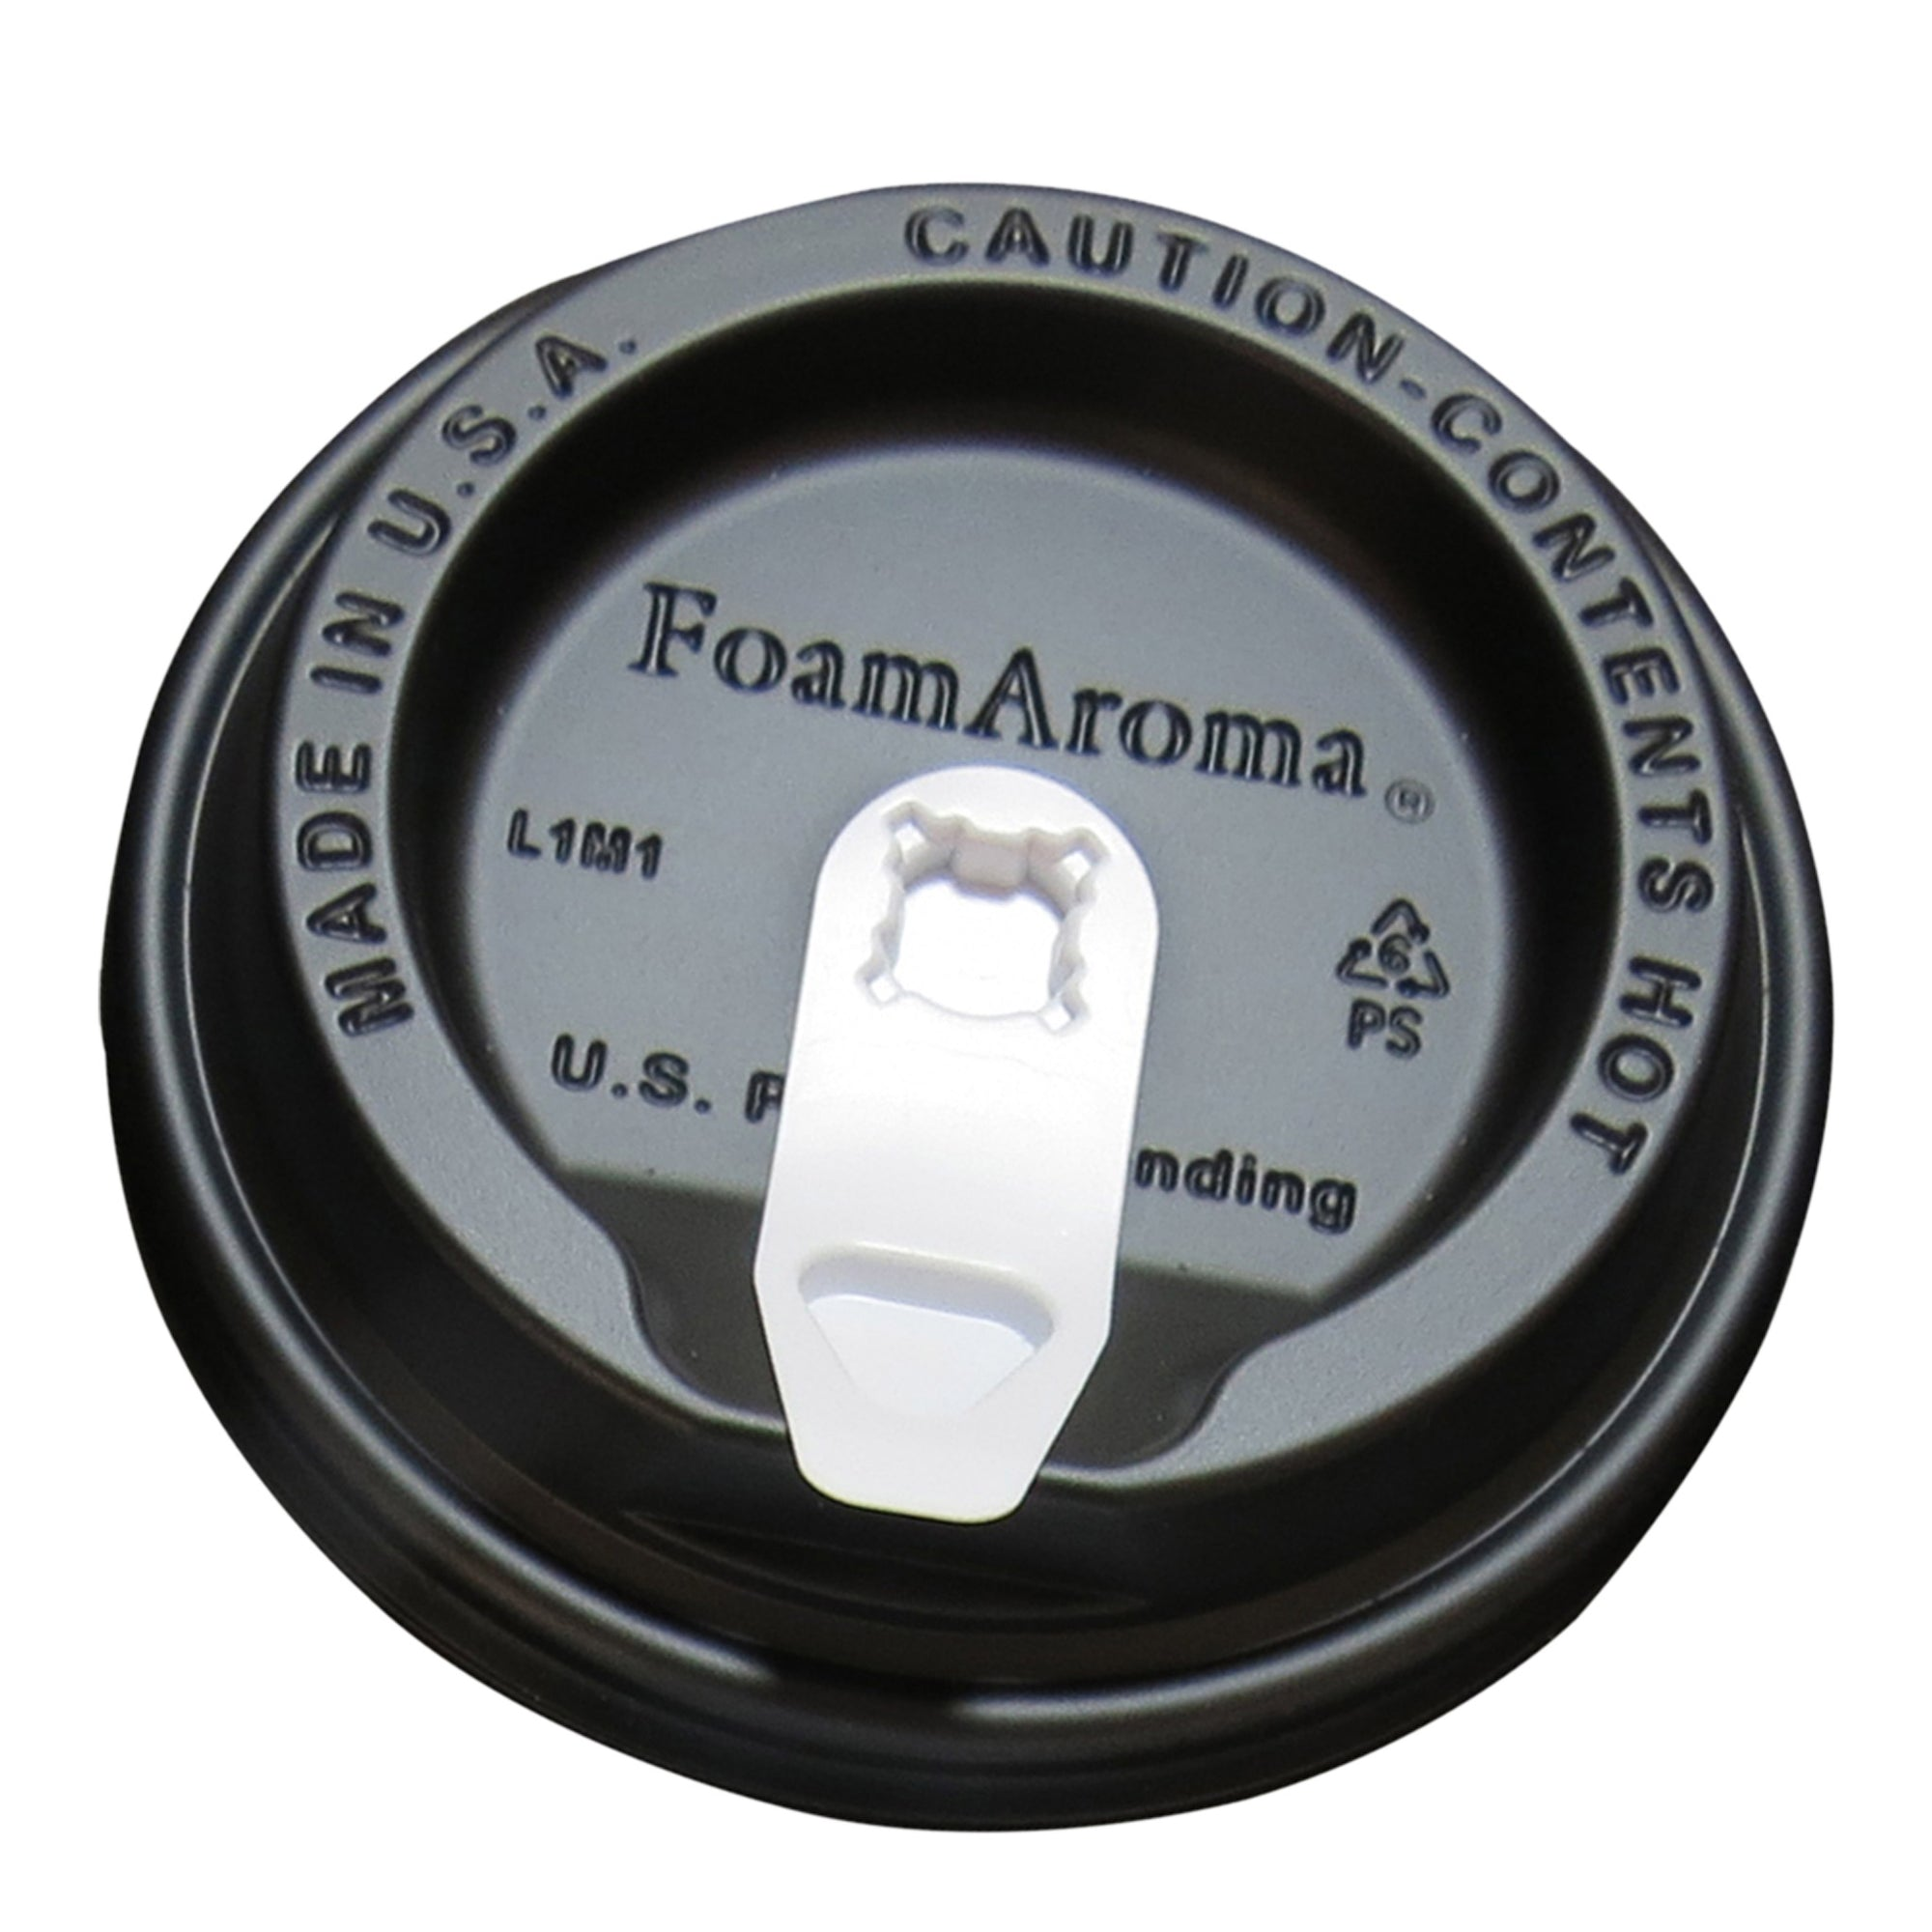 Take Away Aromasnap 750pcs - Foamaroma - Espresso Gear